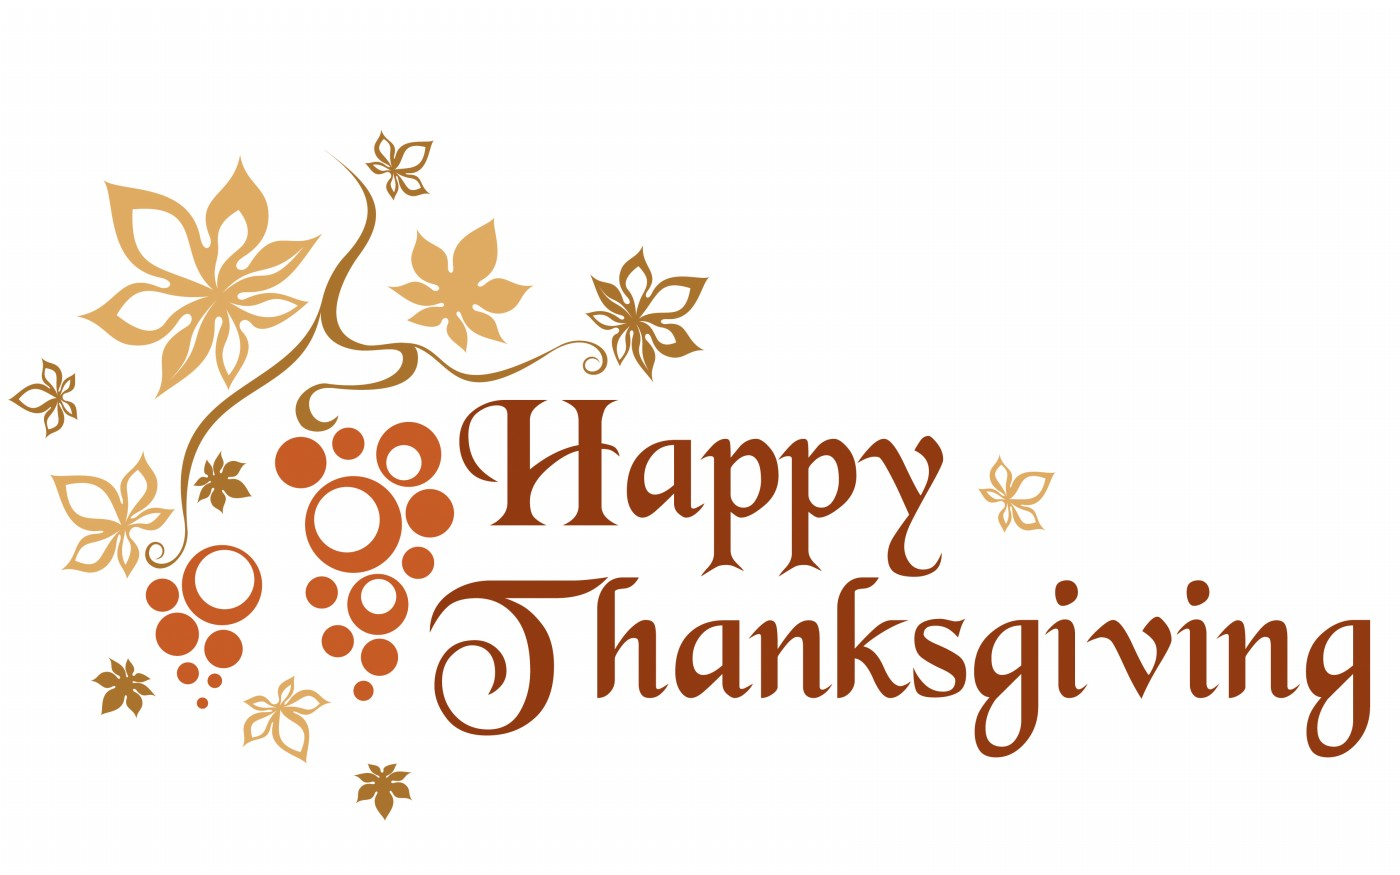 Happy-Thanksgiving-14.jpg